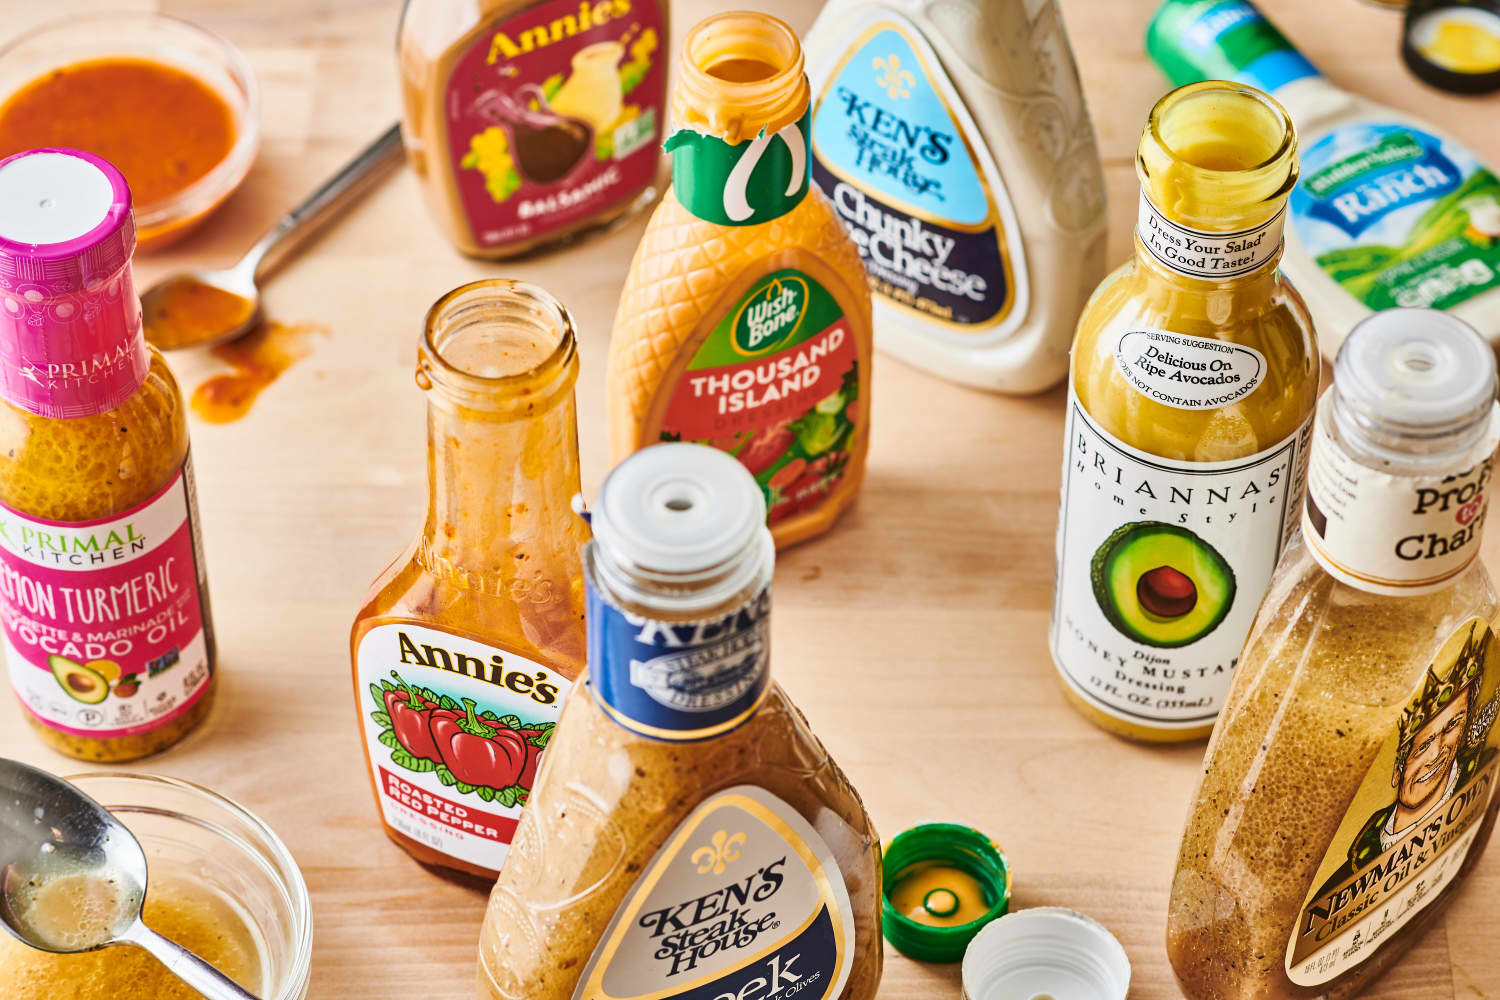 We Tried Every Bottled Salad Dressing We Could Find. Here Are the Winners!